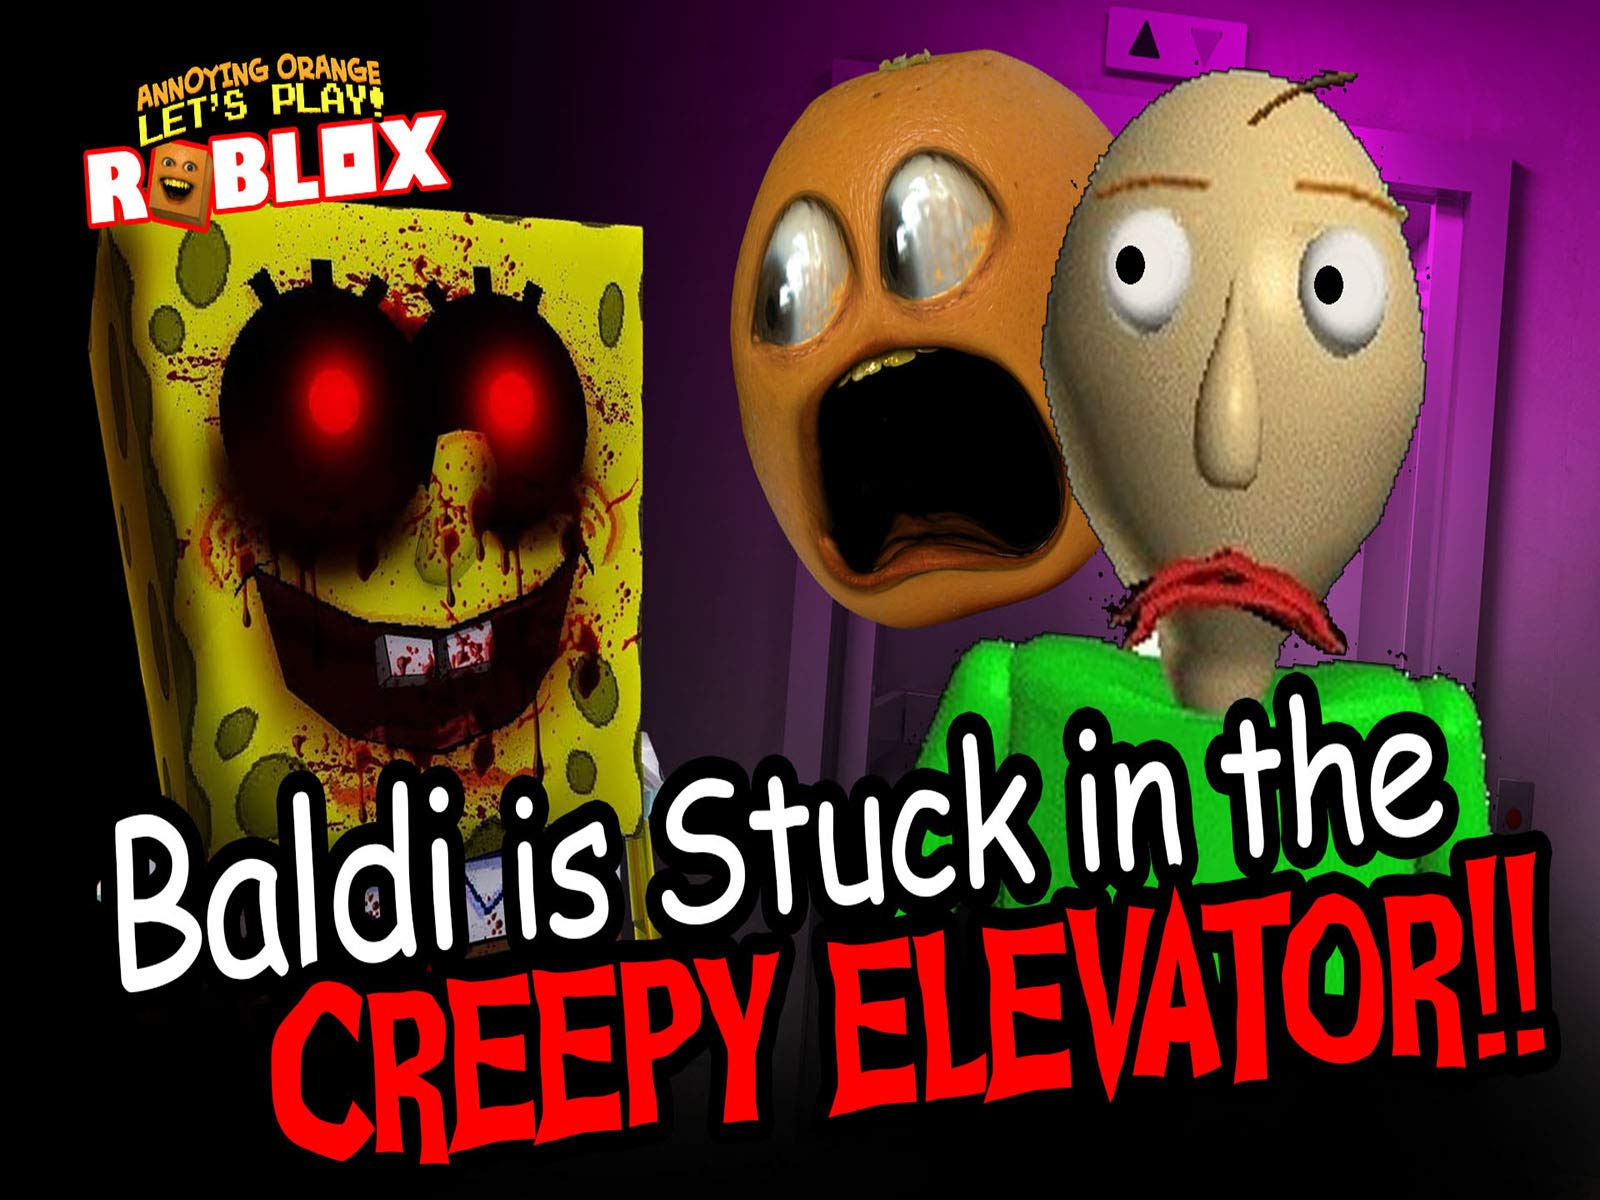 Roblox Horror Lift Watch Clip Roblox Horror Games Annoying Orange Gaming Prime Video